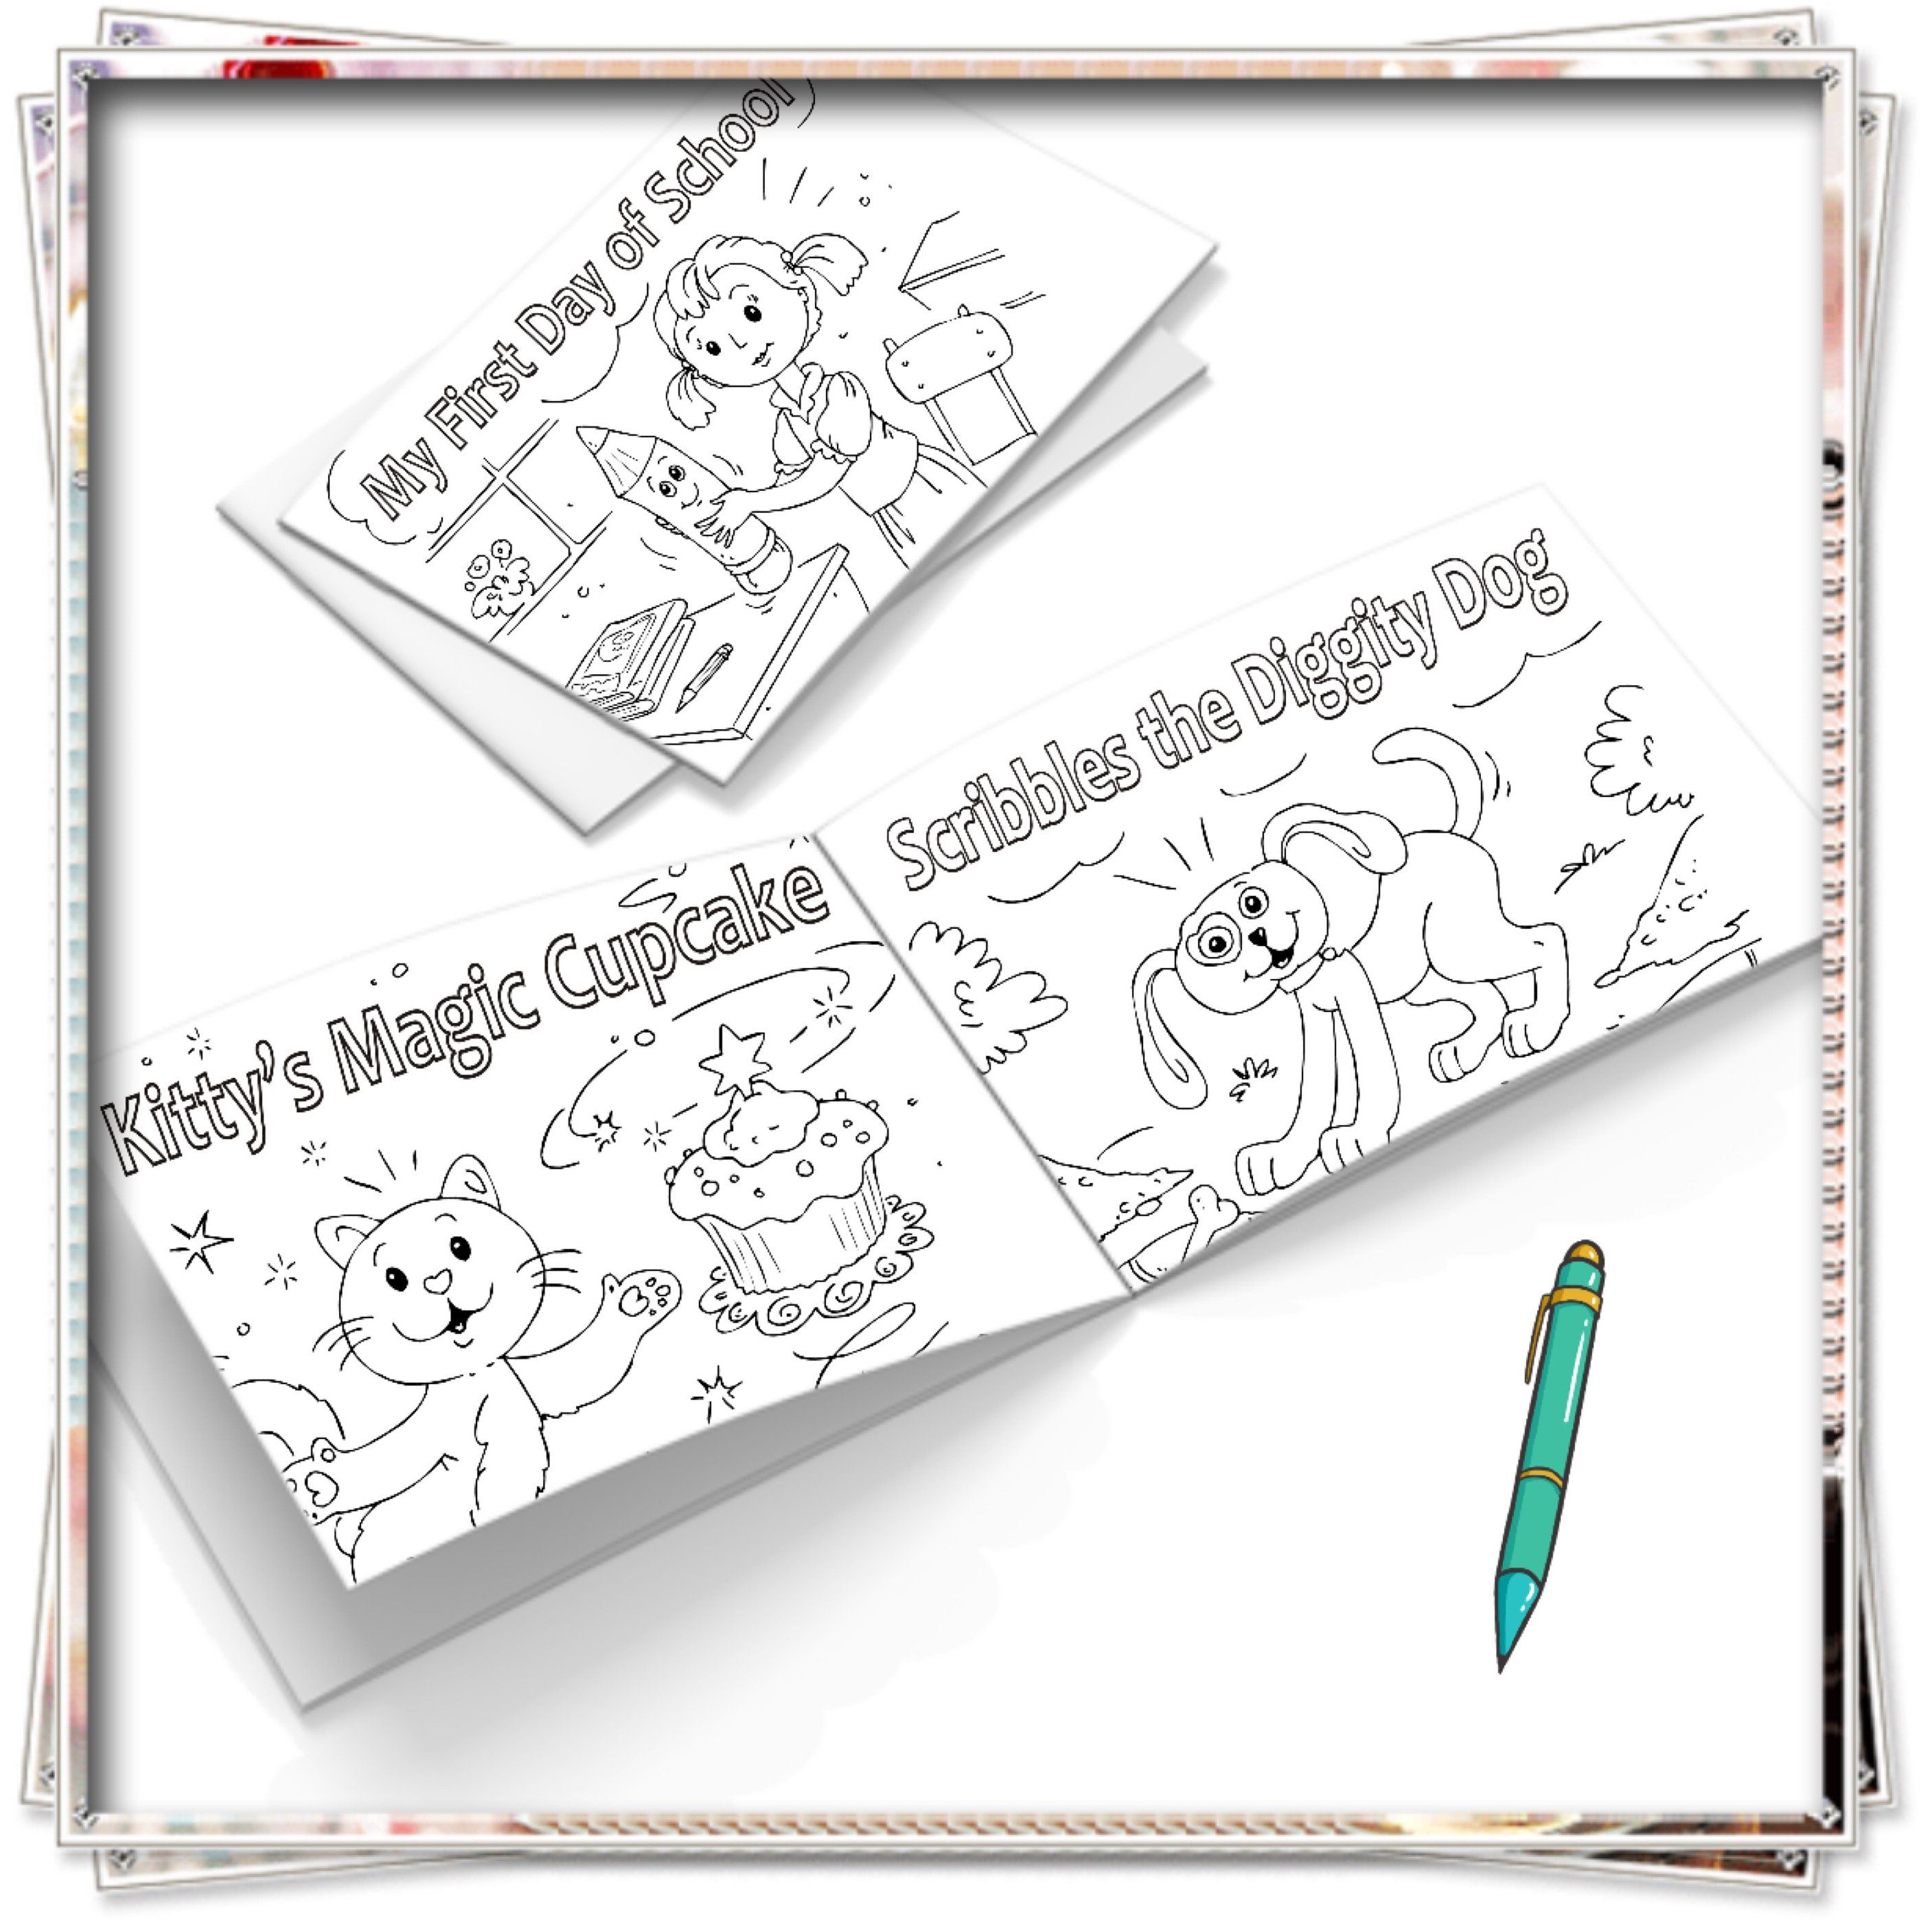 Bedtime Stories For Kids Childrens Coloring Books Childrens Printable Coloring Pages Childre Printable Coloring Pages Childrens Colouring Book Coloring Books